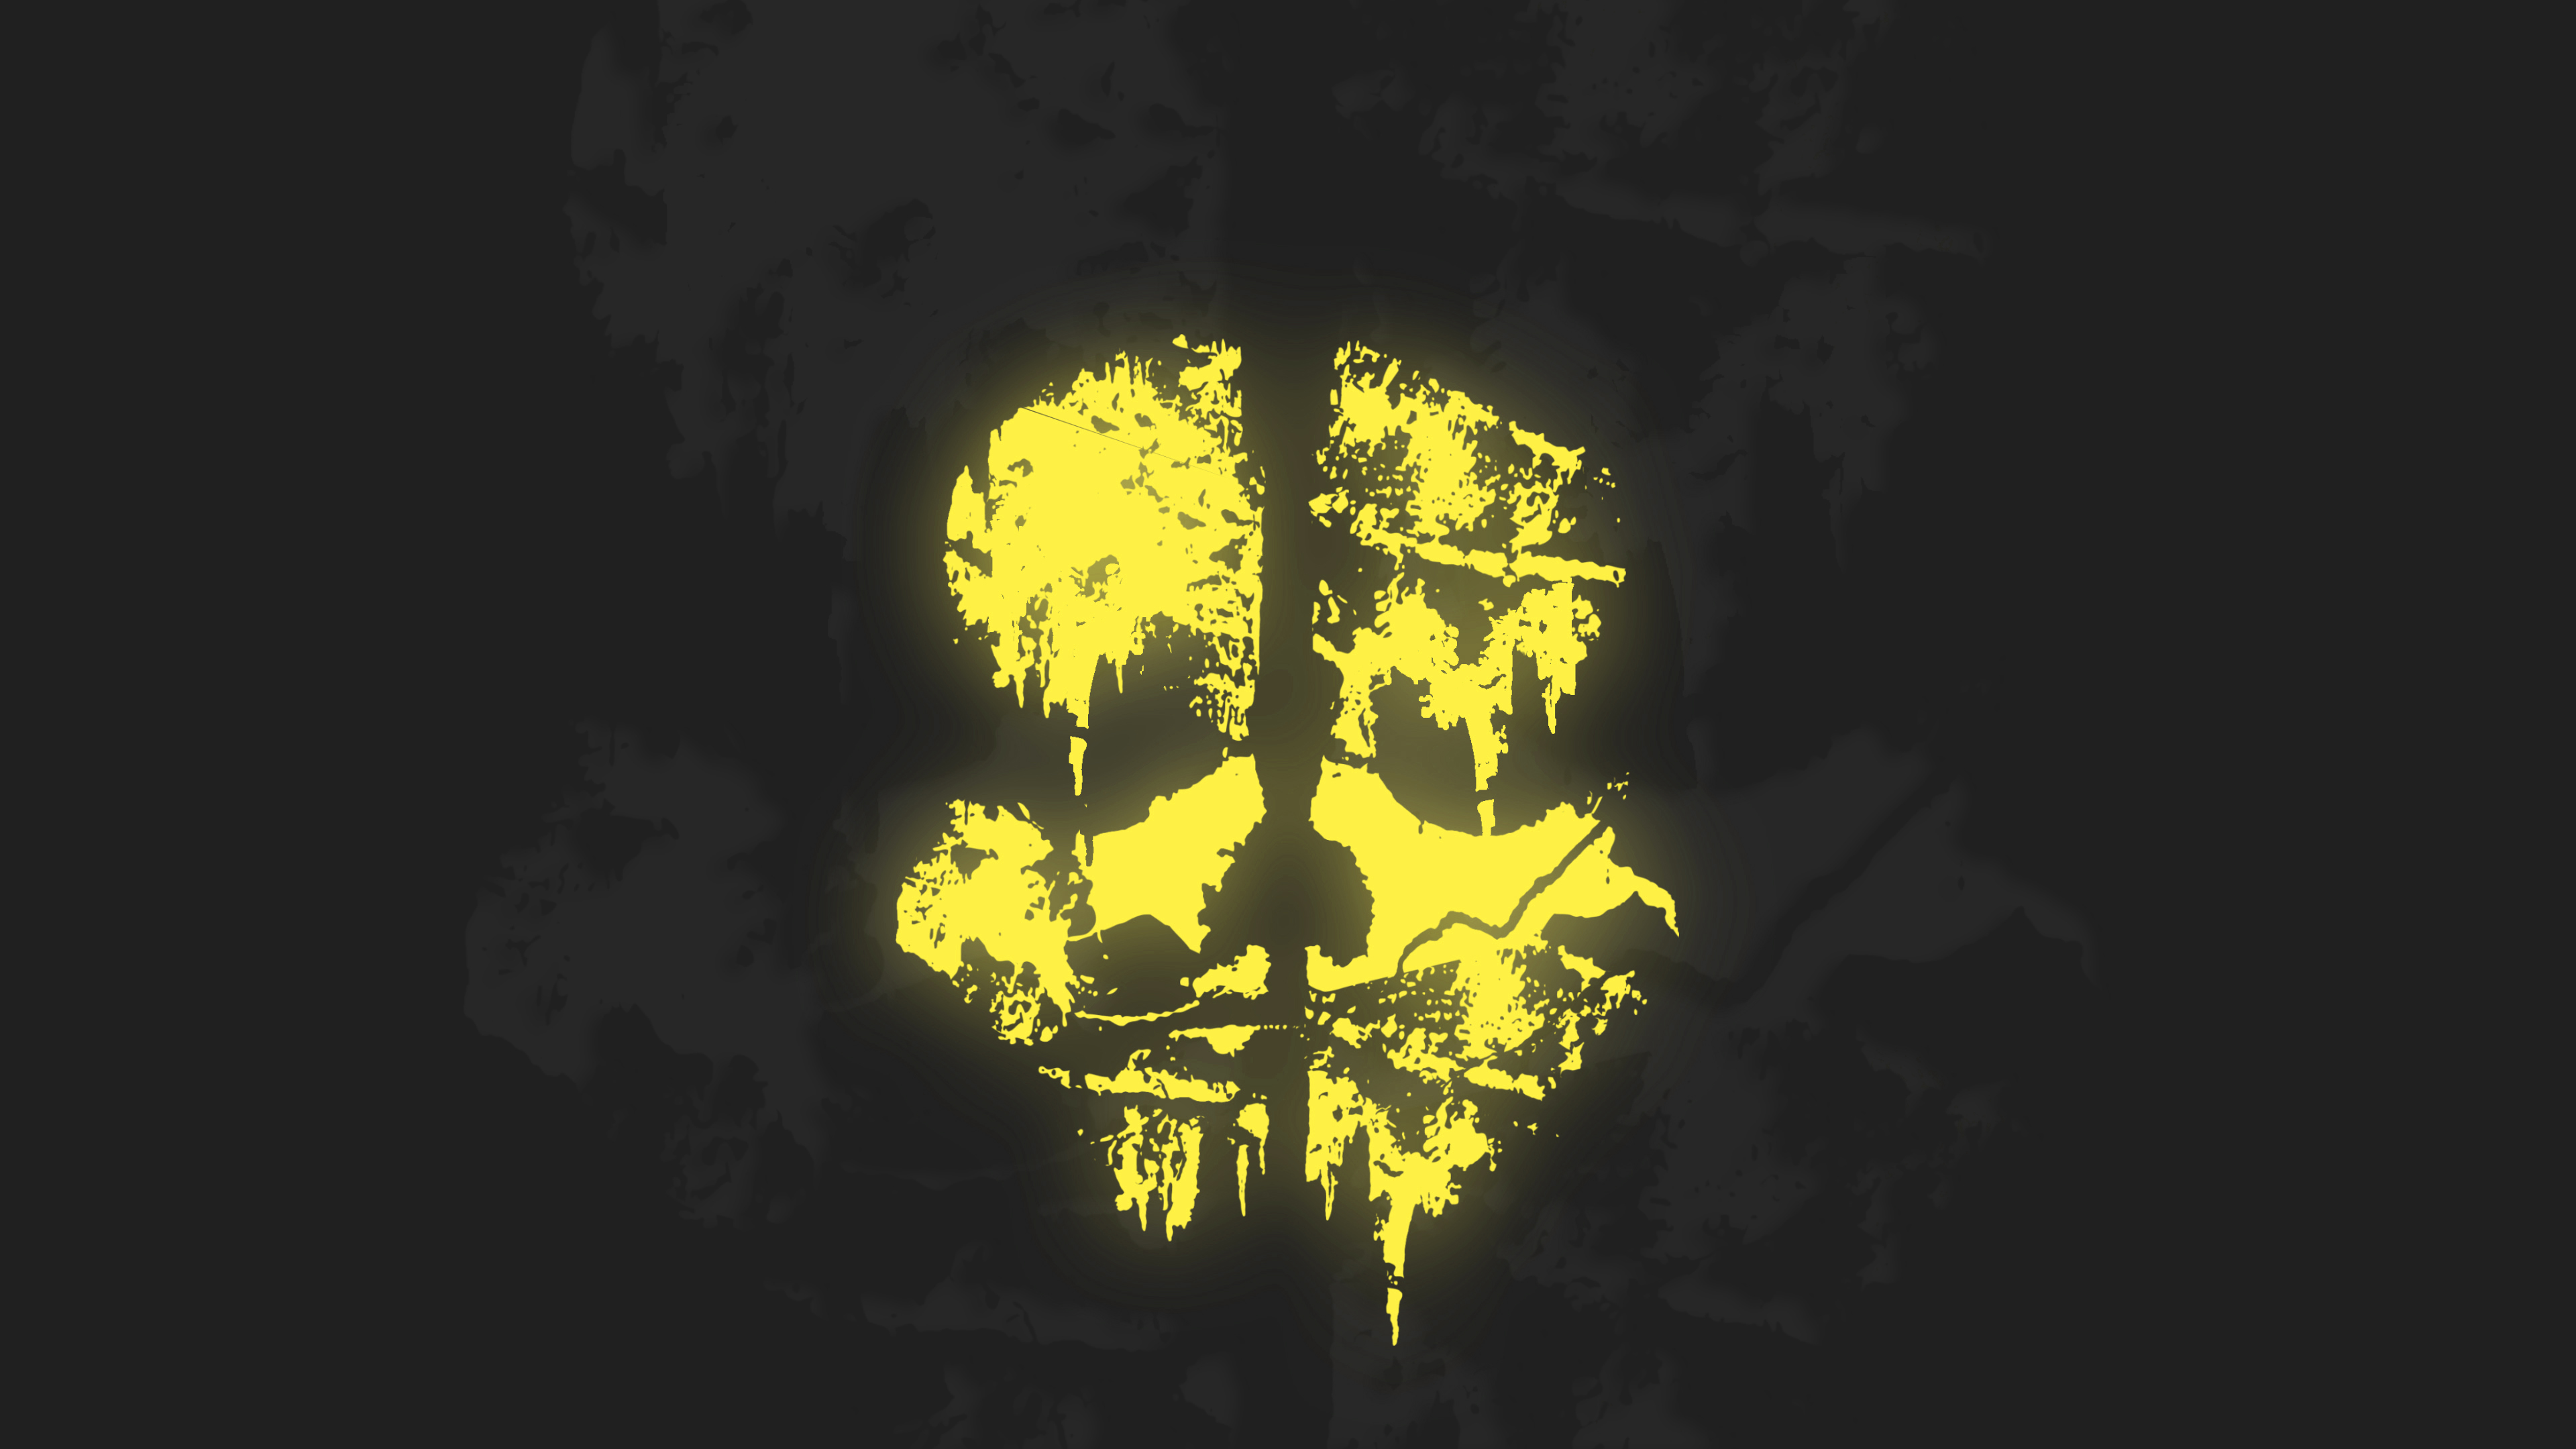 Call Of Duty Ghosts Background Posted By Samantha Thompson